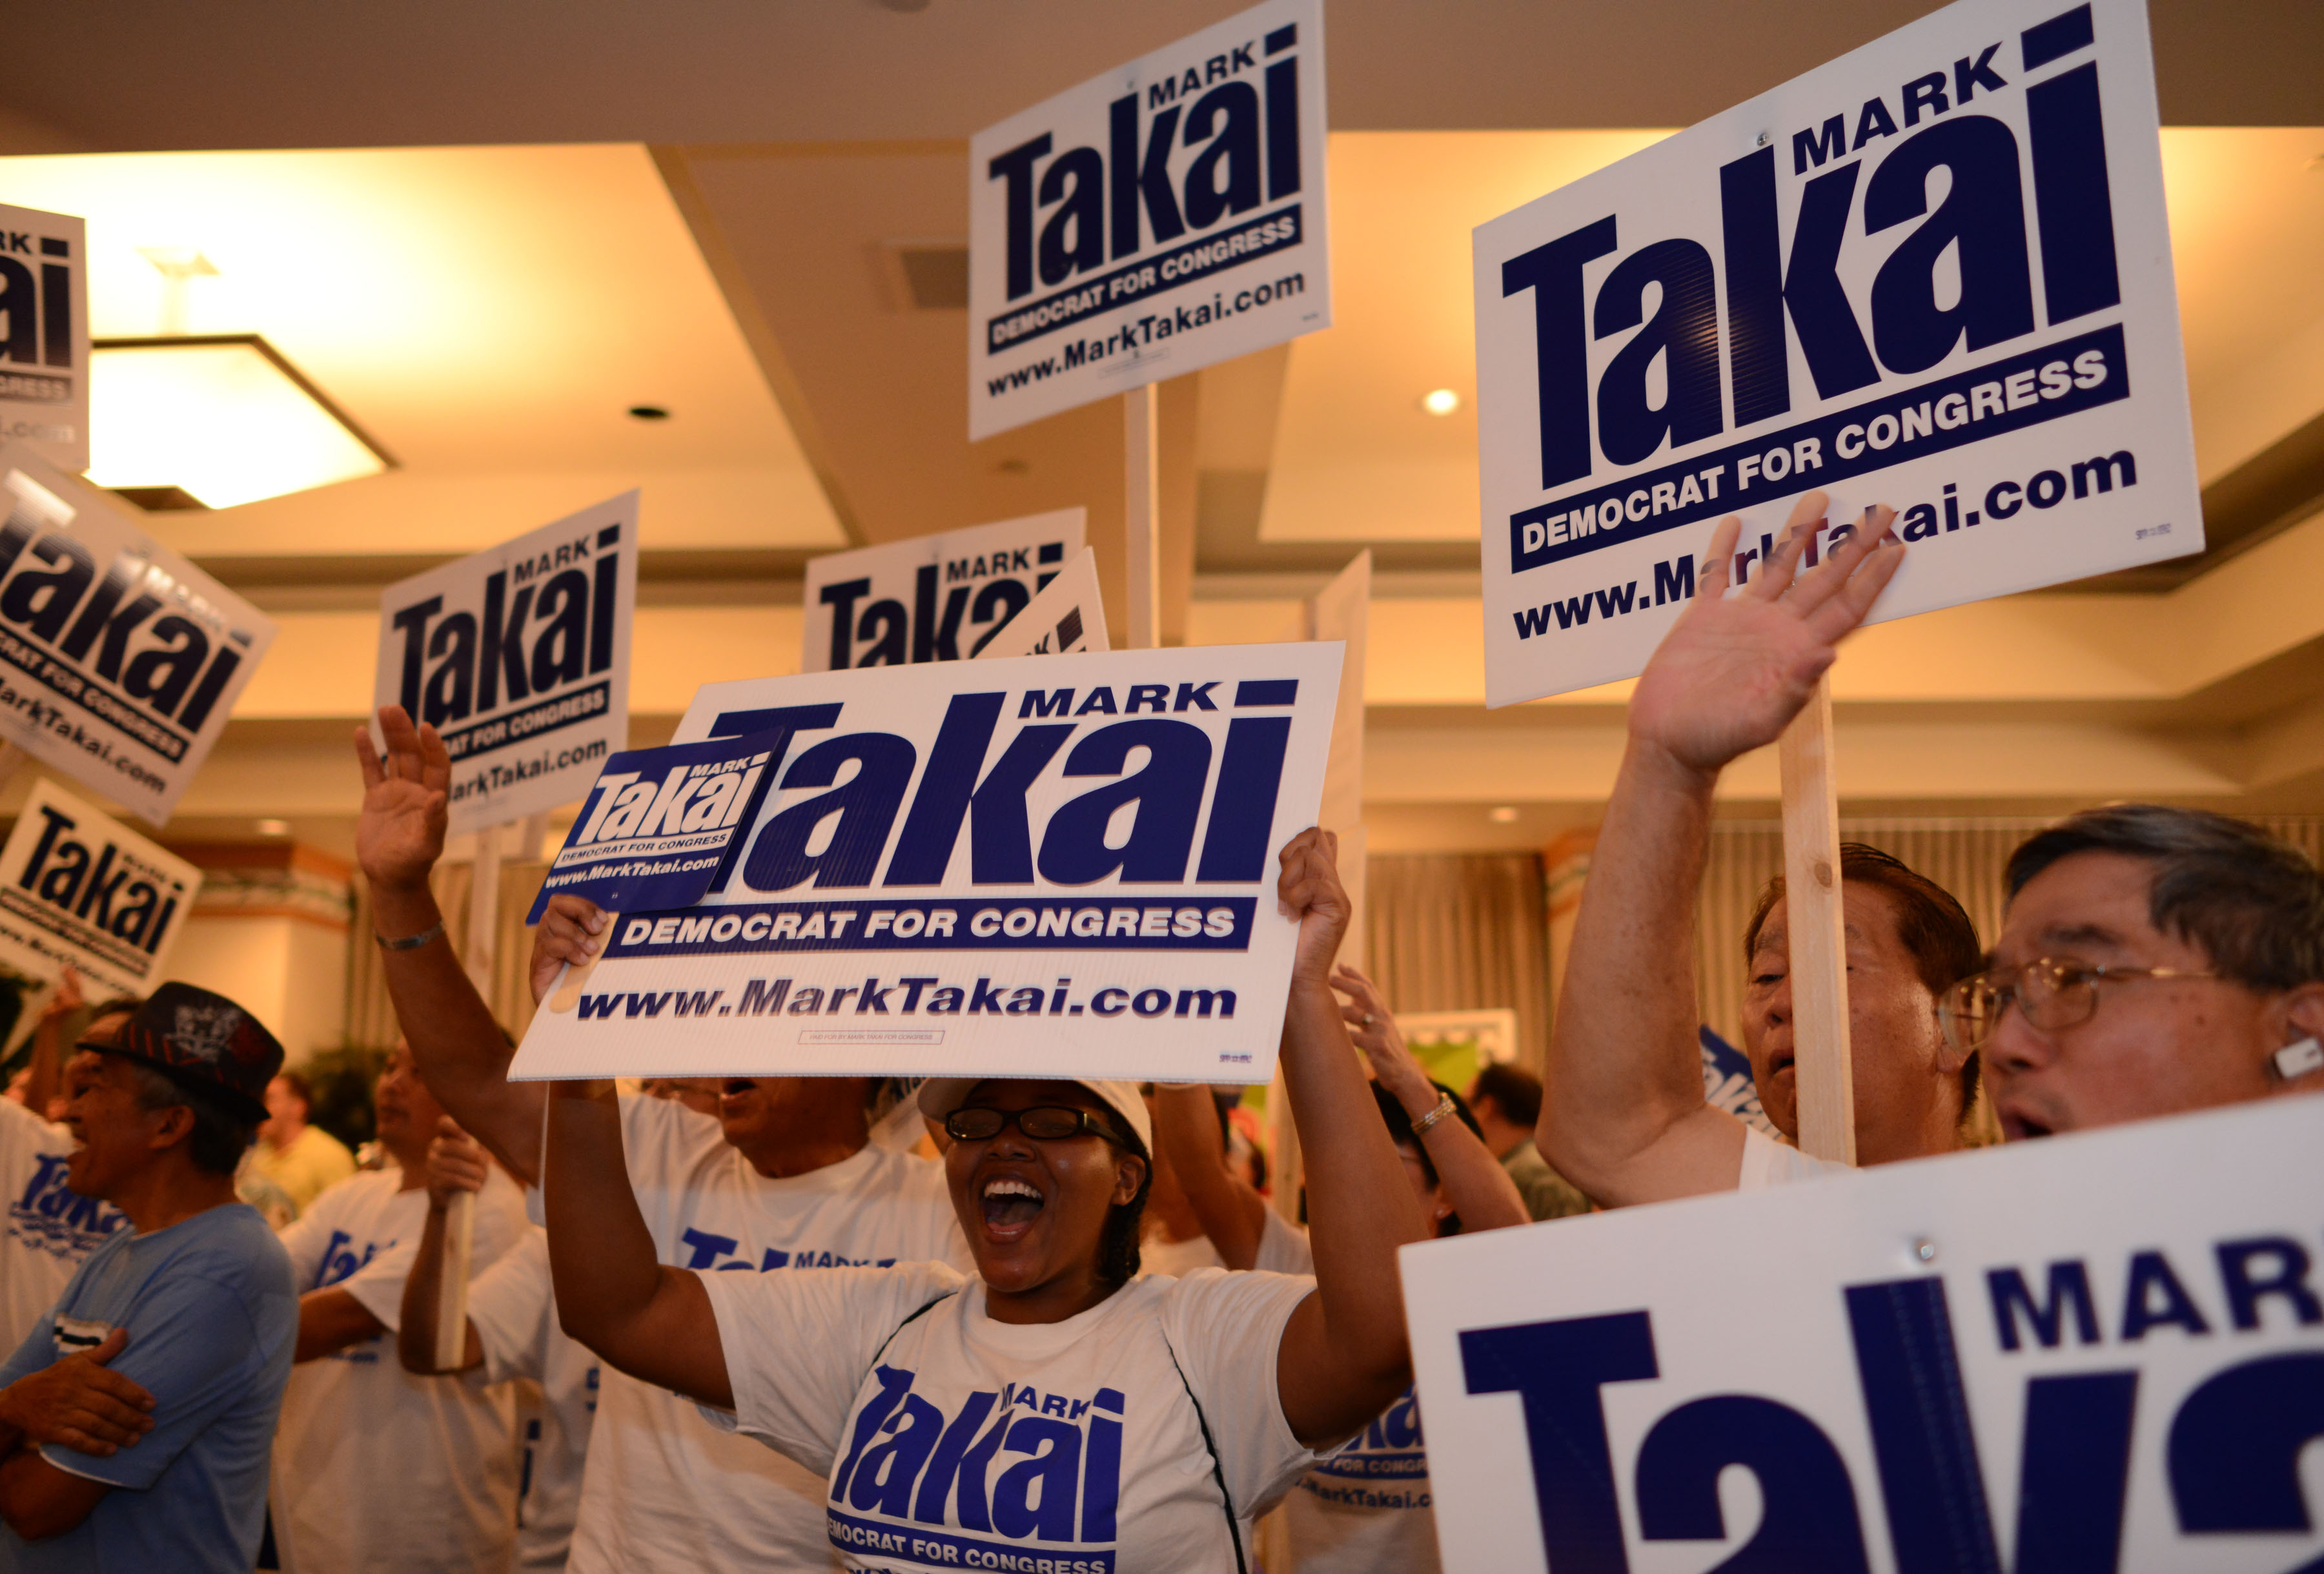 <p><strong>November 2014, Election Night:</strong> Takai's supporters cheer early returns showing him ahead in the race for Congress.</p>